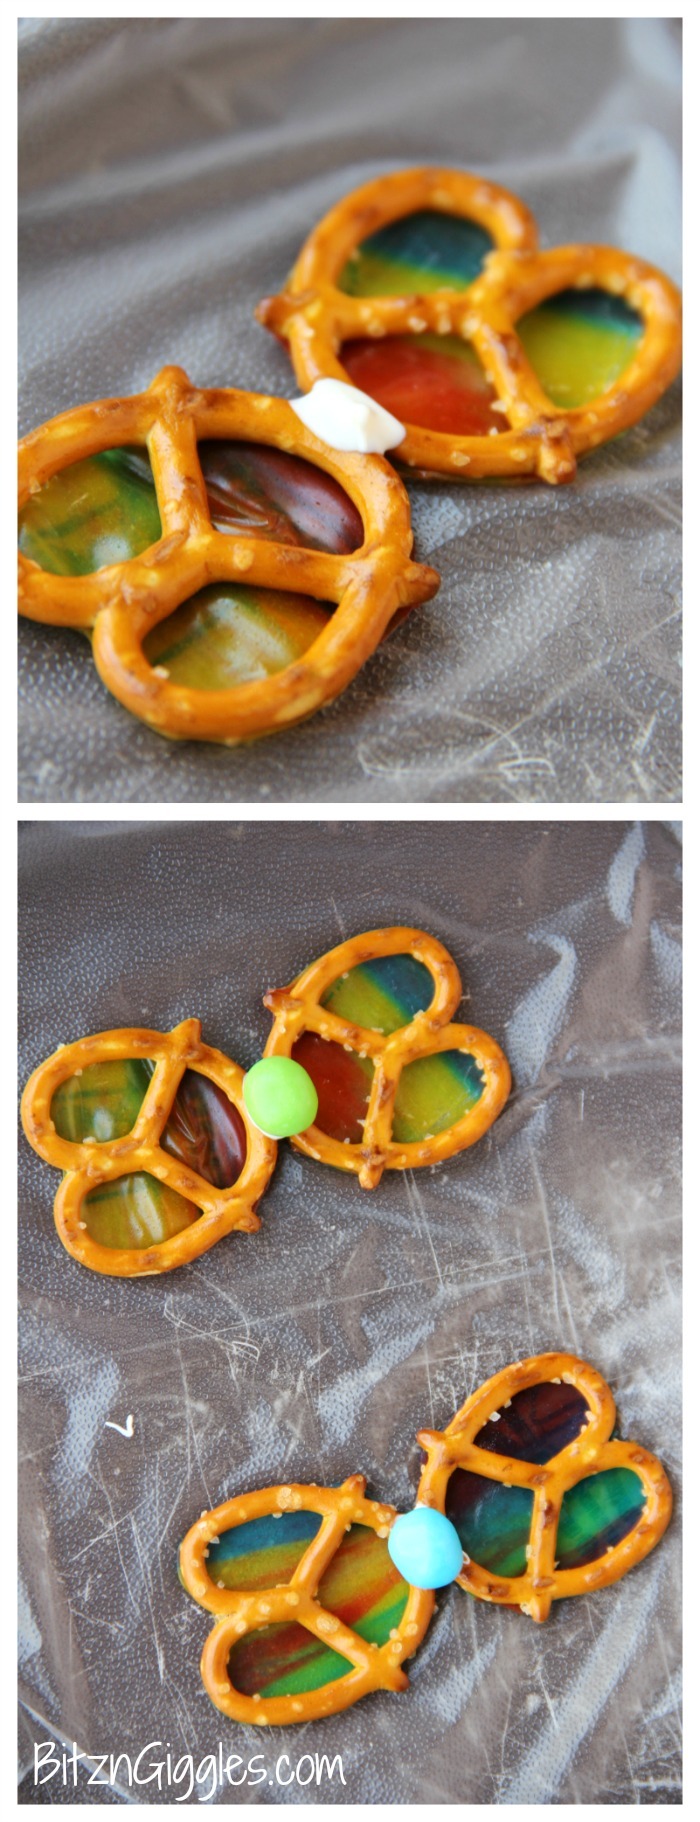 Pretzel Butterflies - 4-Ingredient beautiful butterflies to snack on! Rollups act as the colorful wings and give a gorgeous stained glass effect. So pretty when held up to the sun!